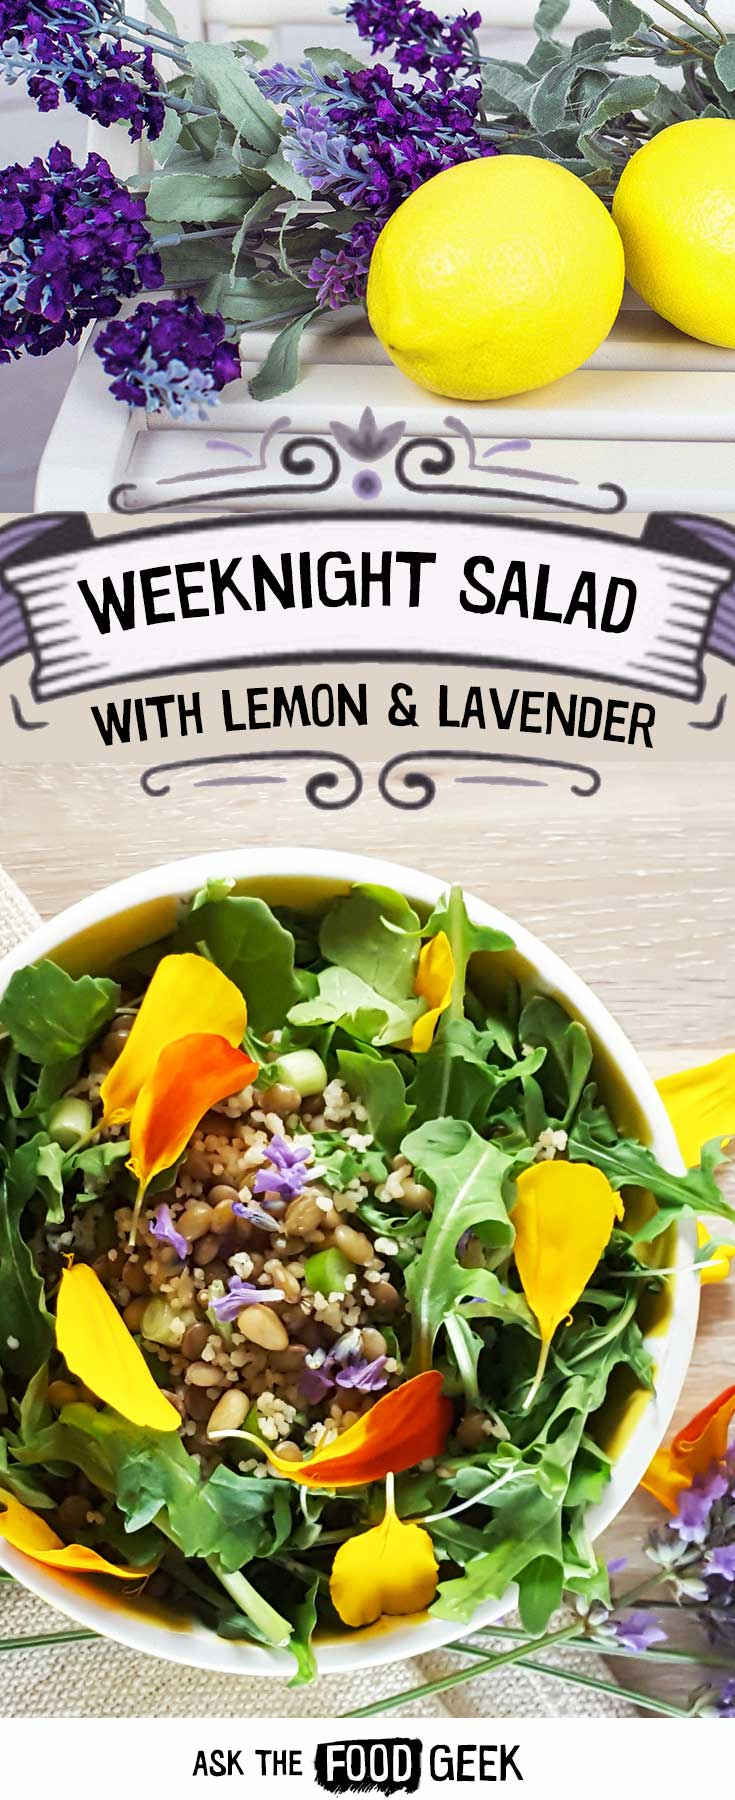 Dinner recipes - Salad for Dinner | Arugula, lentils, couscous, lavender, lemon and a honey dressing. This salad also is great as leftovers / great for make-ahead. Vegetarian. Edible flowers, including lavender and marigolds.